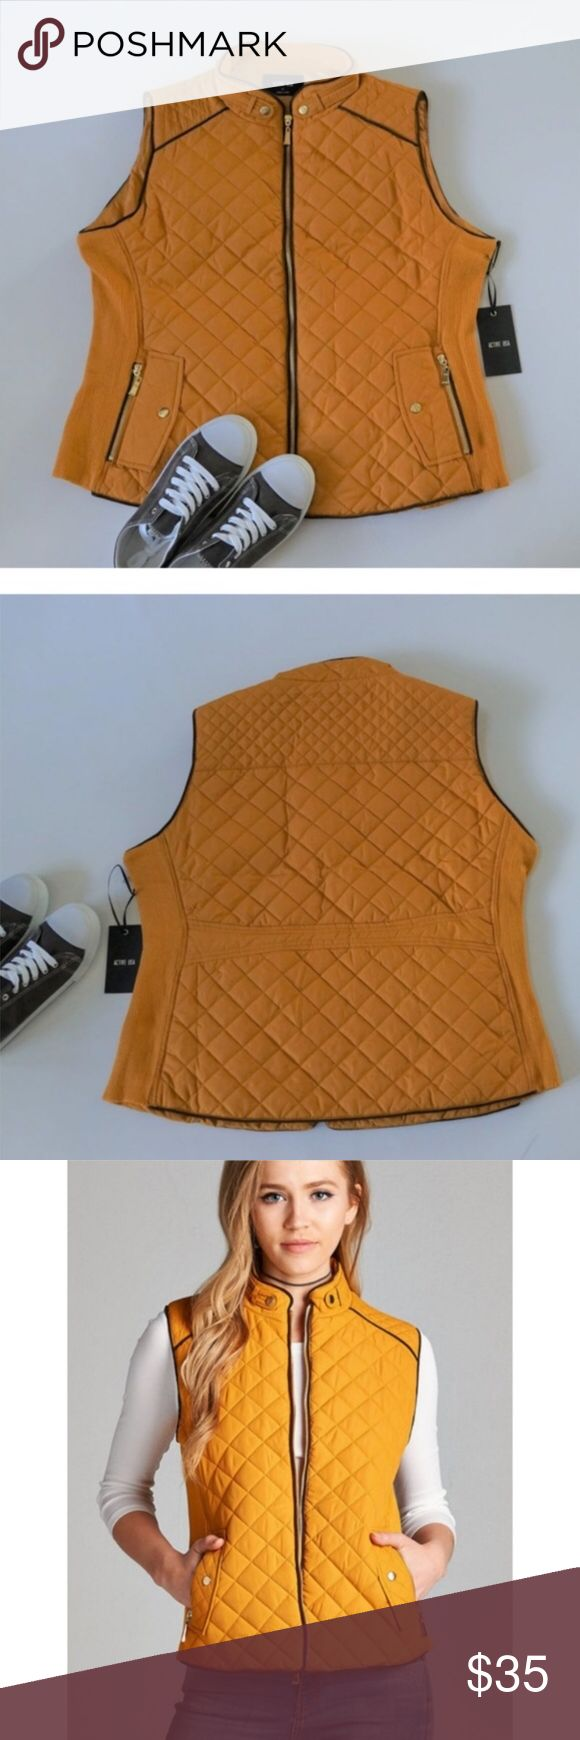 Quilted Padded Vest 3X Zip Pockets Mustard Quilted Padded Vest 3X Zip Pockets Lightweight    Features:    poly; poly lining  vegan suede piping  front zip  pockets  side ribbing that stretches for a perfect fit  hand wash    Measurements, laying flat (in inches):  Bust: 25.25 3X  Waist: 22.5  Length: 26 Jackets & Coats Vests